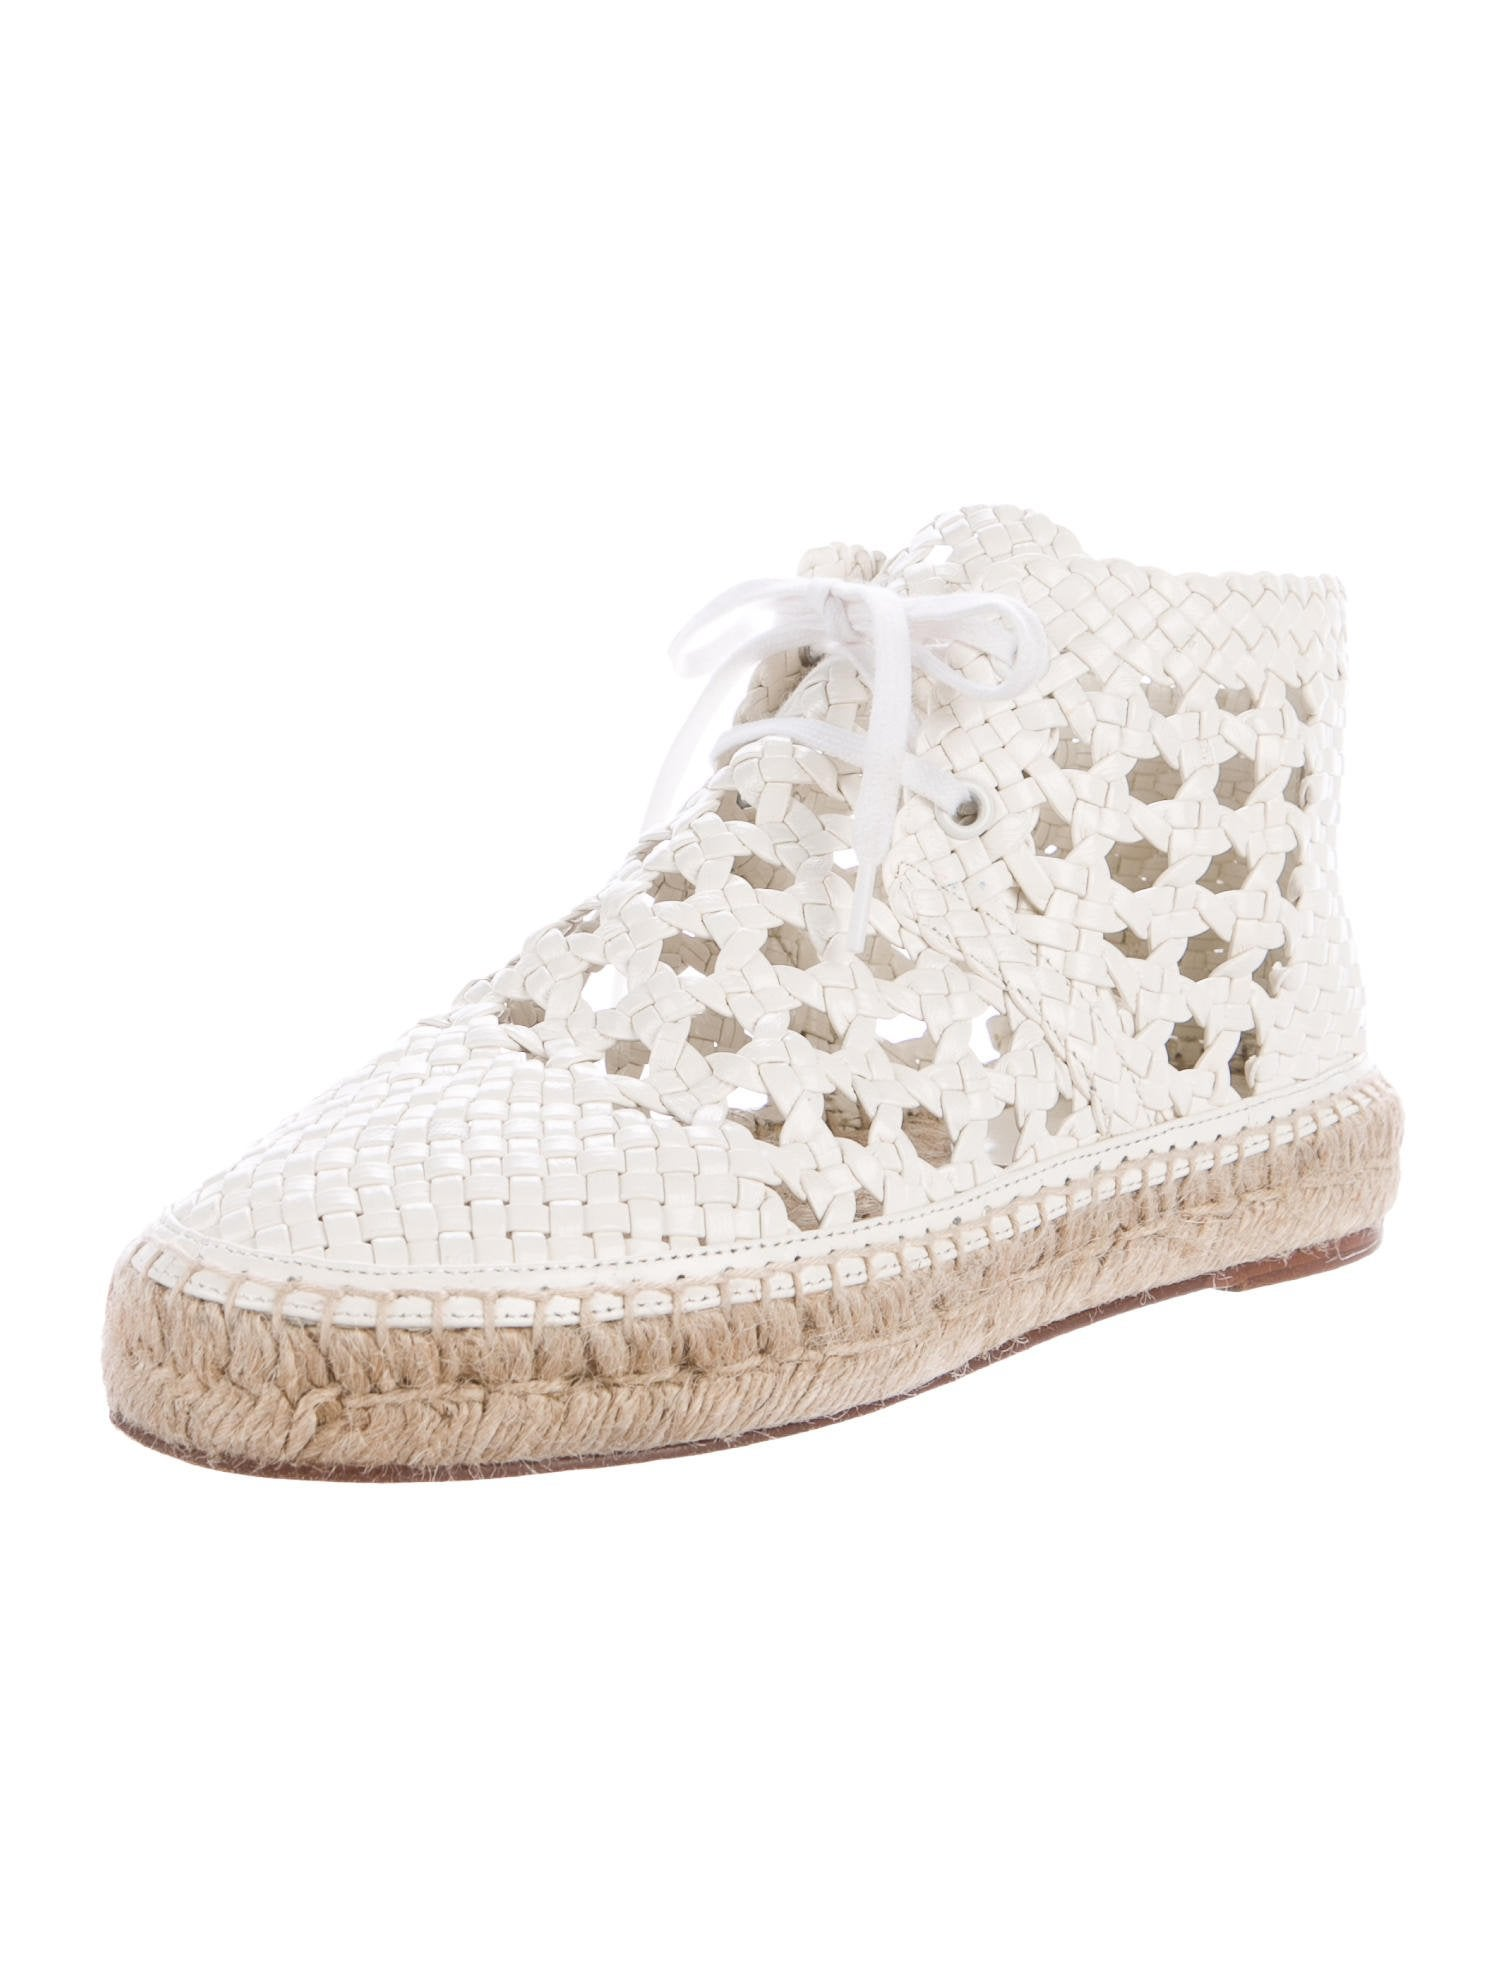 discount best wholesale free shipping low price Céline Woven Lace-Up Espadrilles discount big discount get to buy online NRaTp4